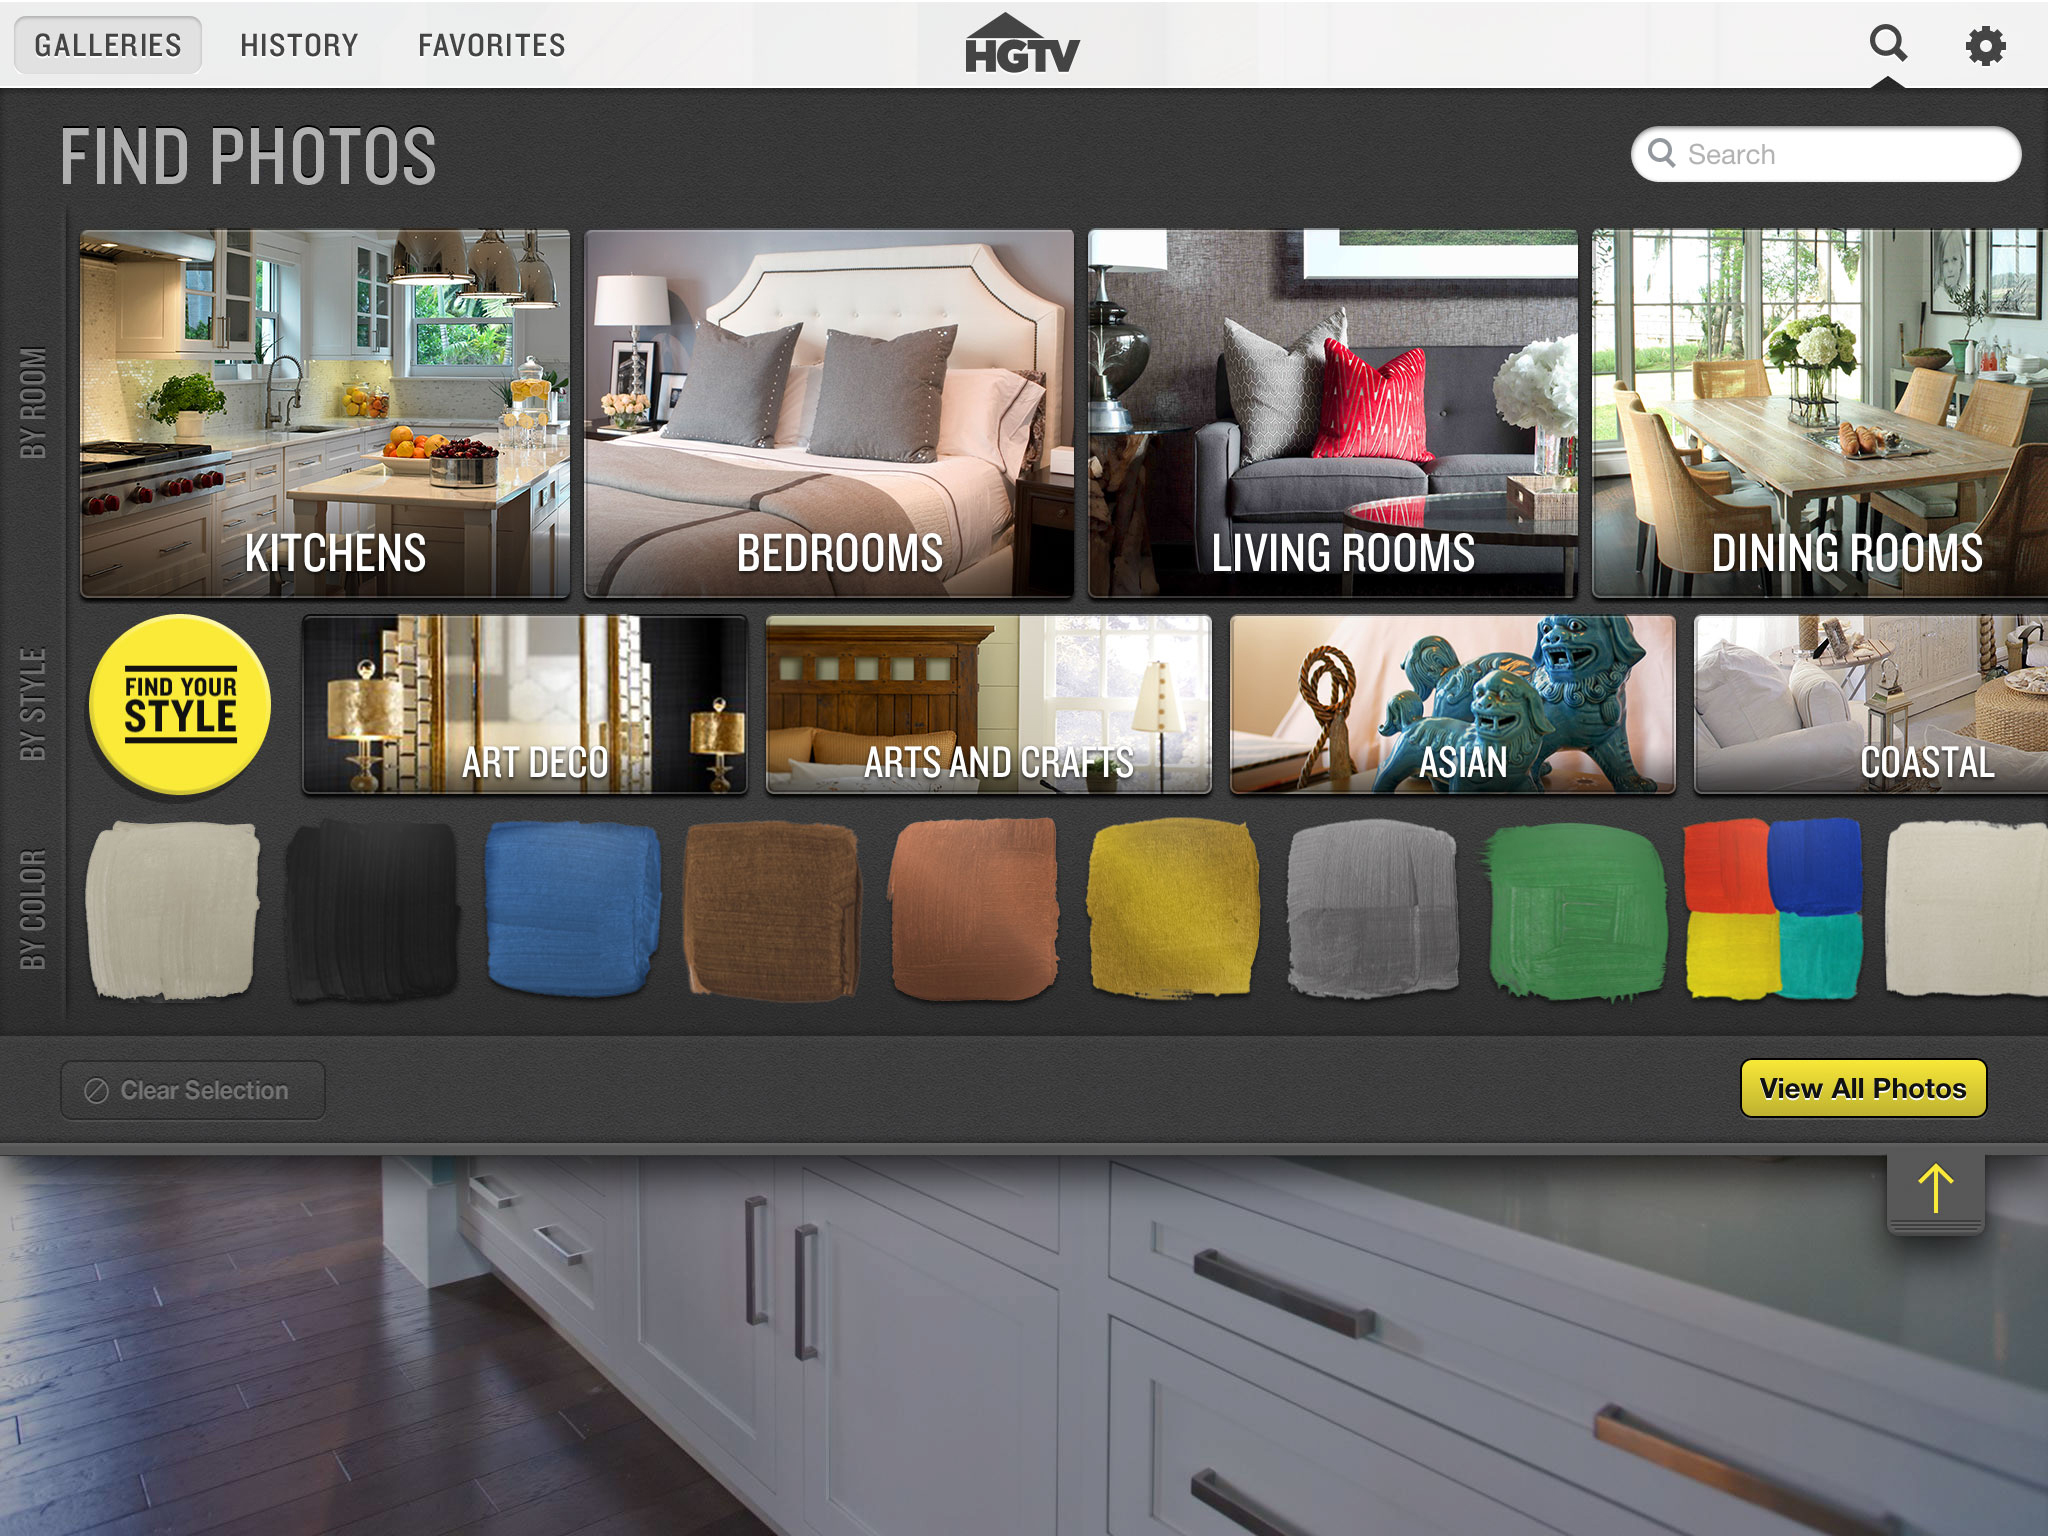 HGTV Offers Endless Home Décor Inspiration With Dreamy Free Design - Home decor app